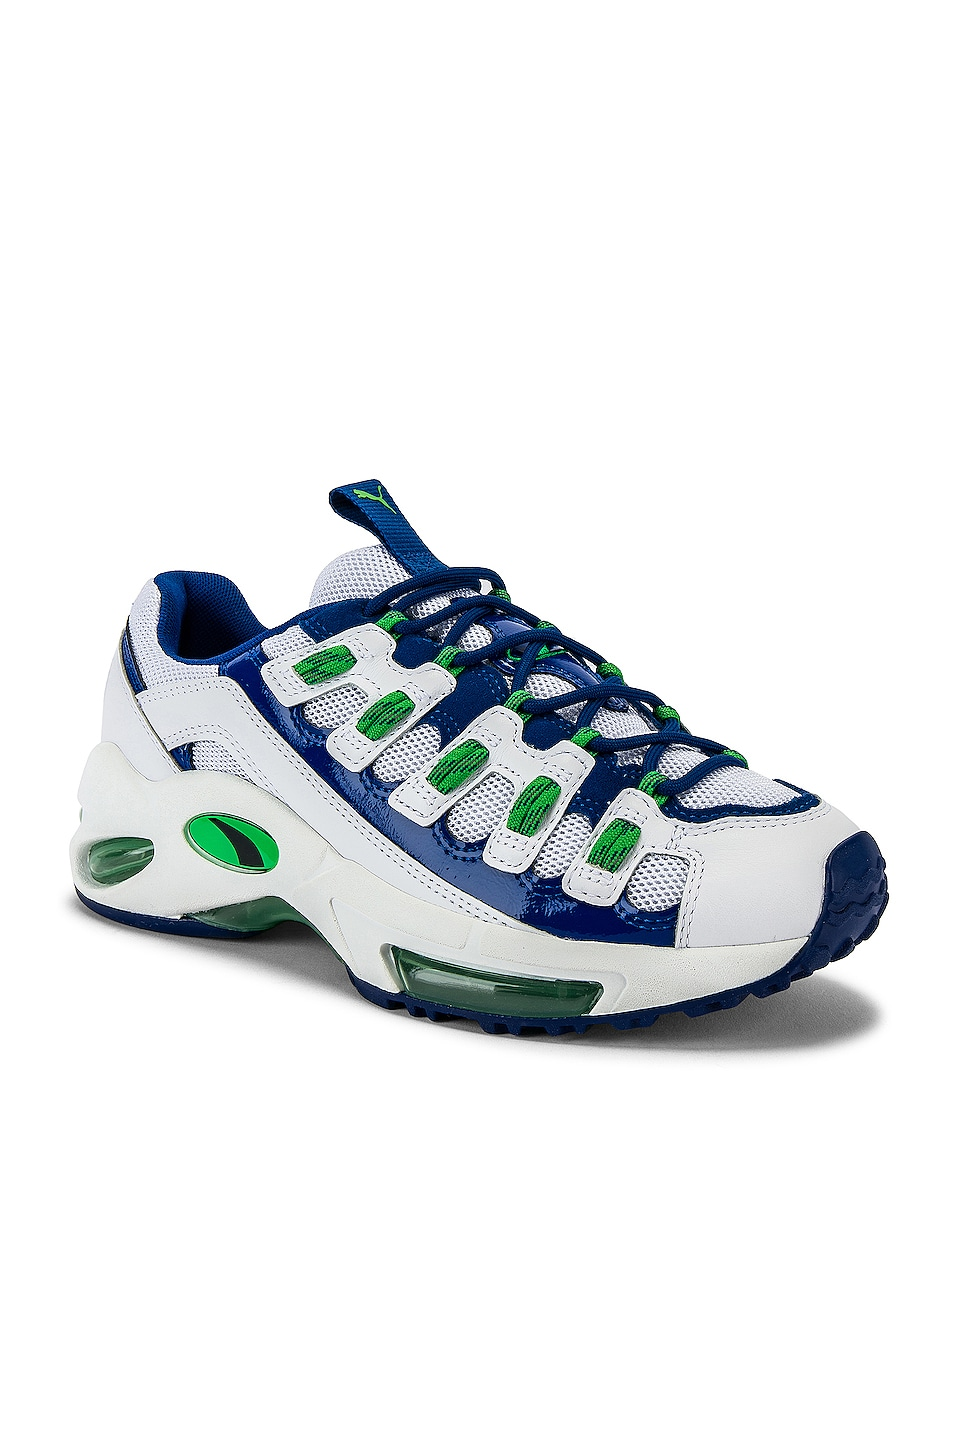 Puma Select Cell Endura Patent 98 en Puma White & Andean Toucan